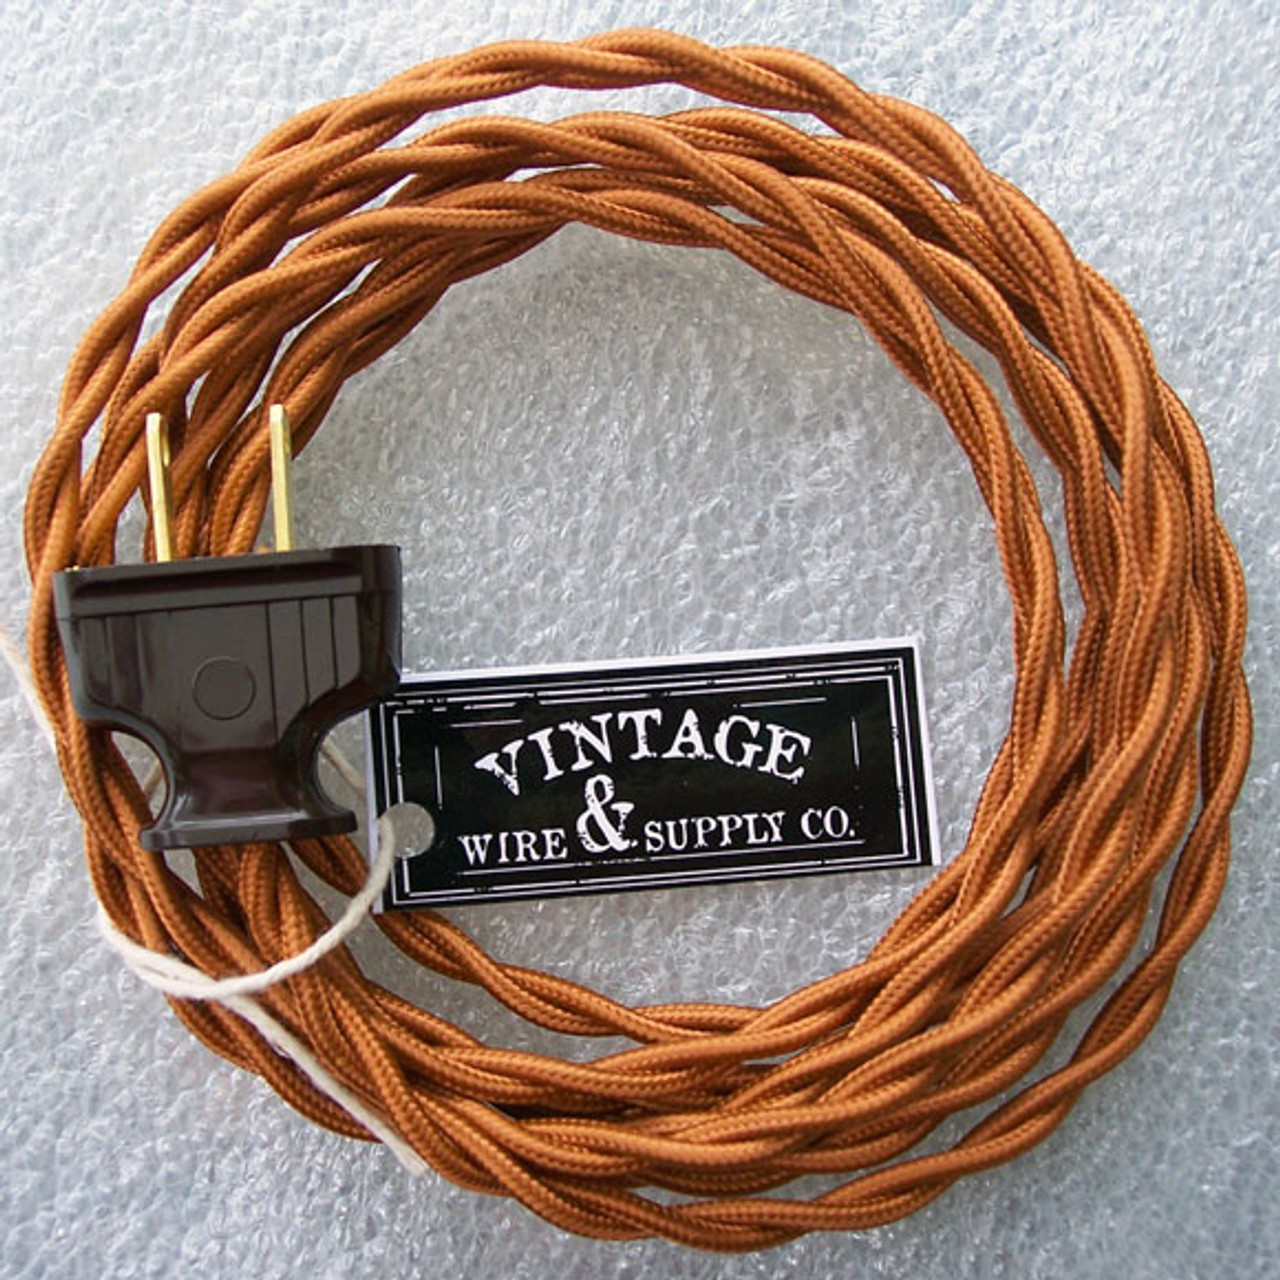 Lamp Cord From Vintage Wire And Supply